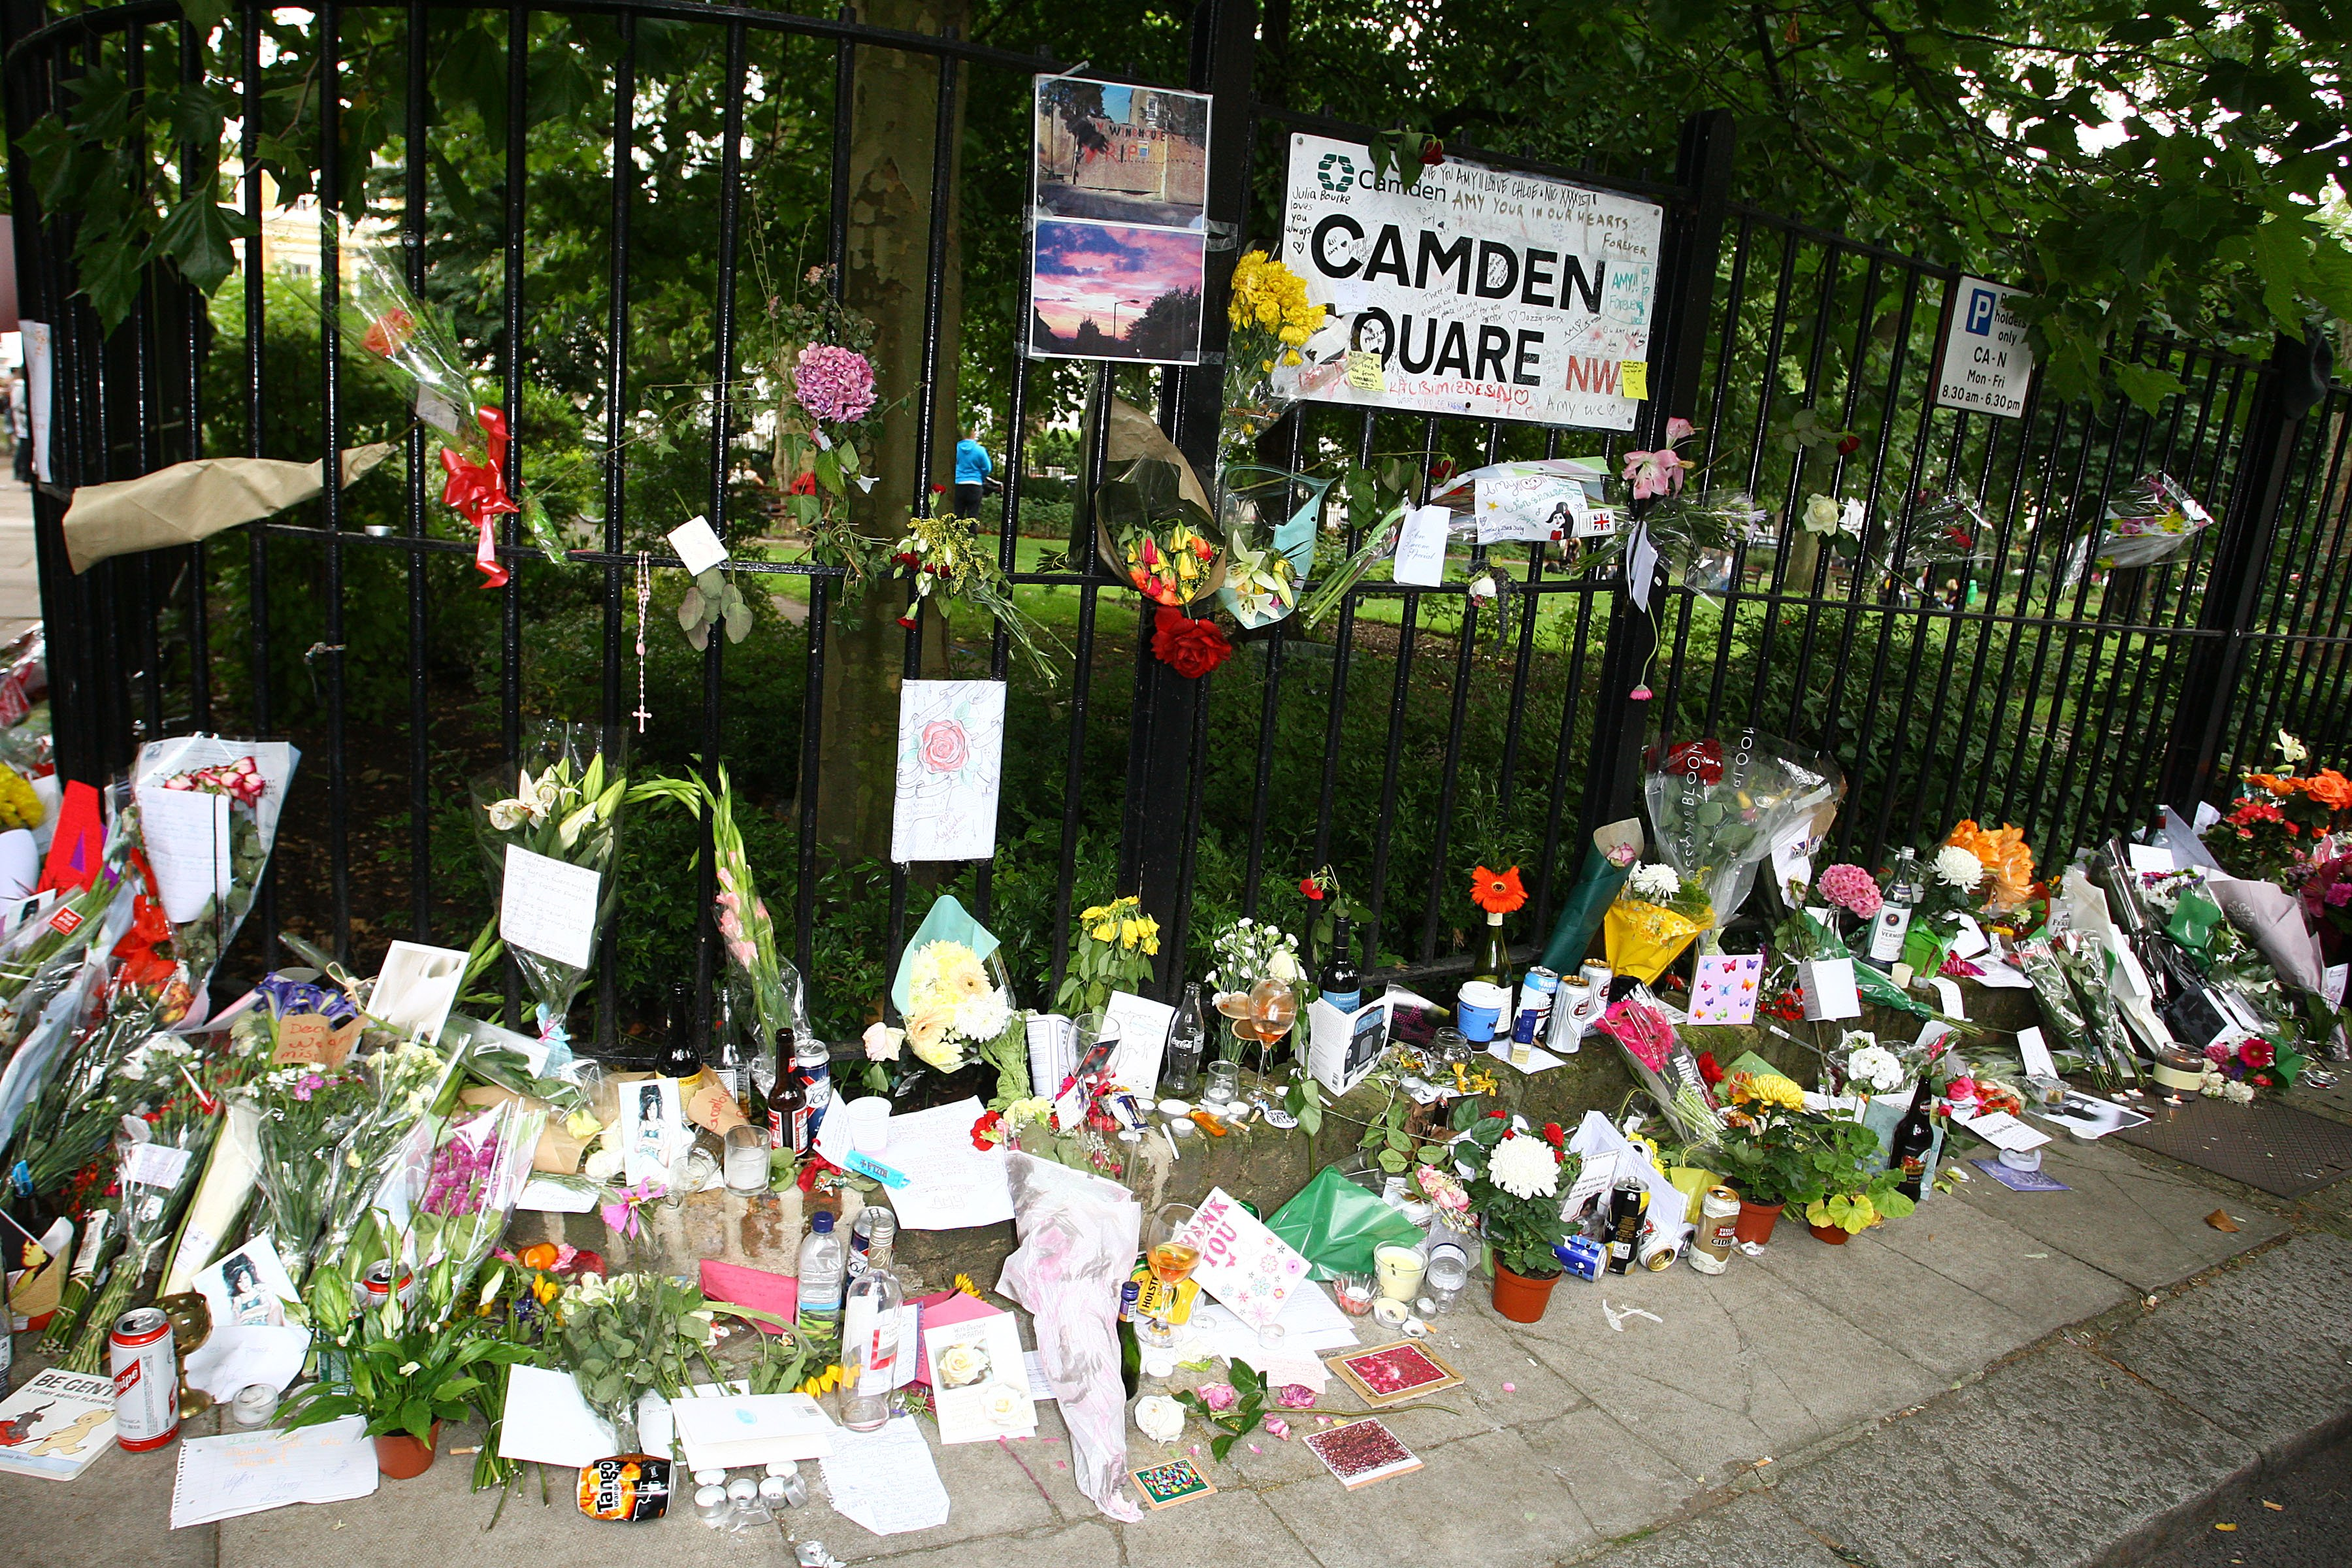 Tributes left at Amy Winehouse's home in Camden Square on July 26, 2011 | Photo: Getty Images